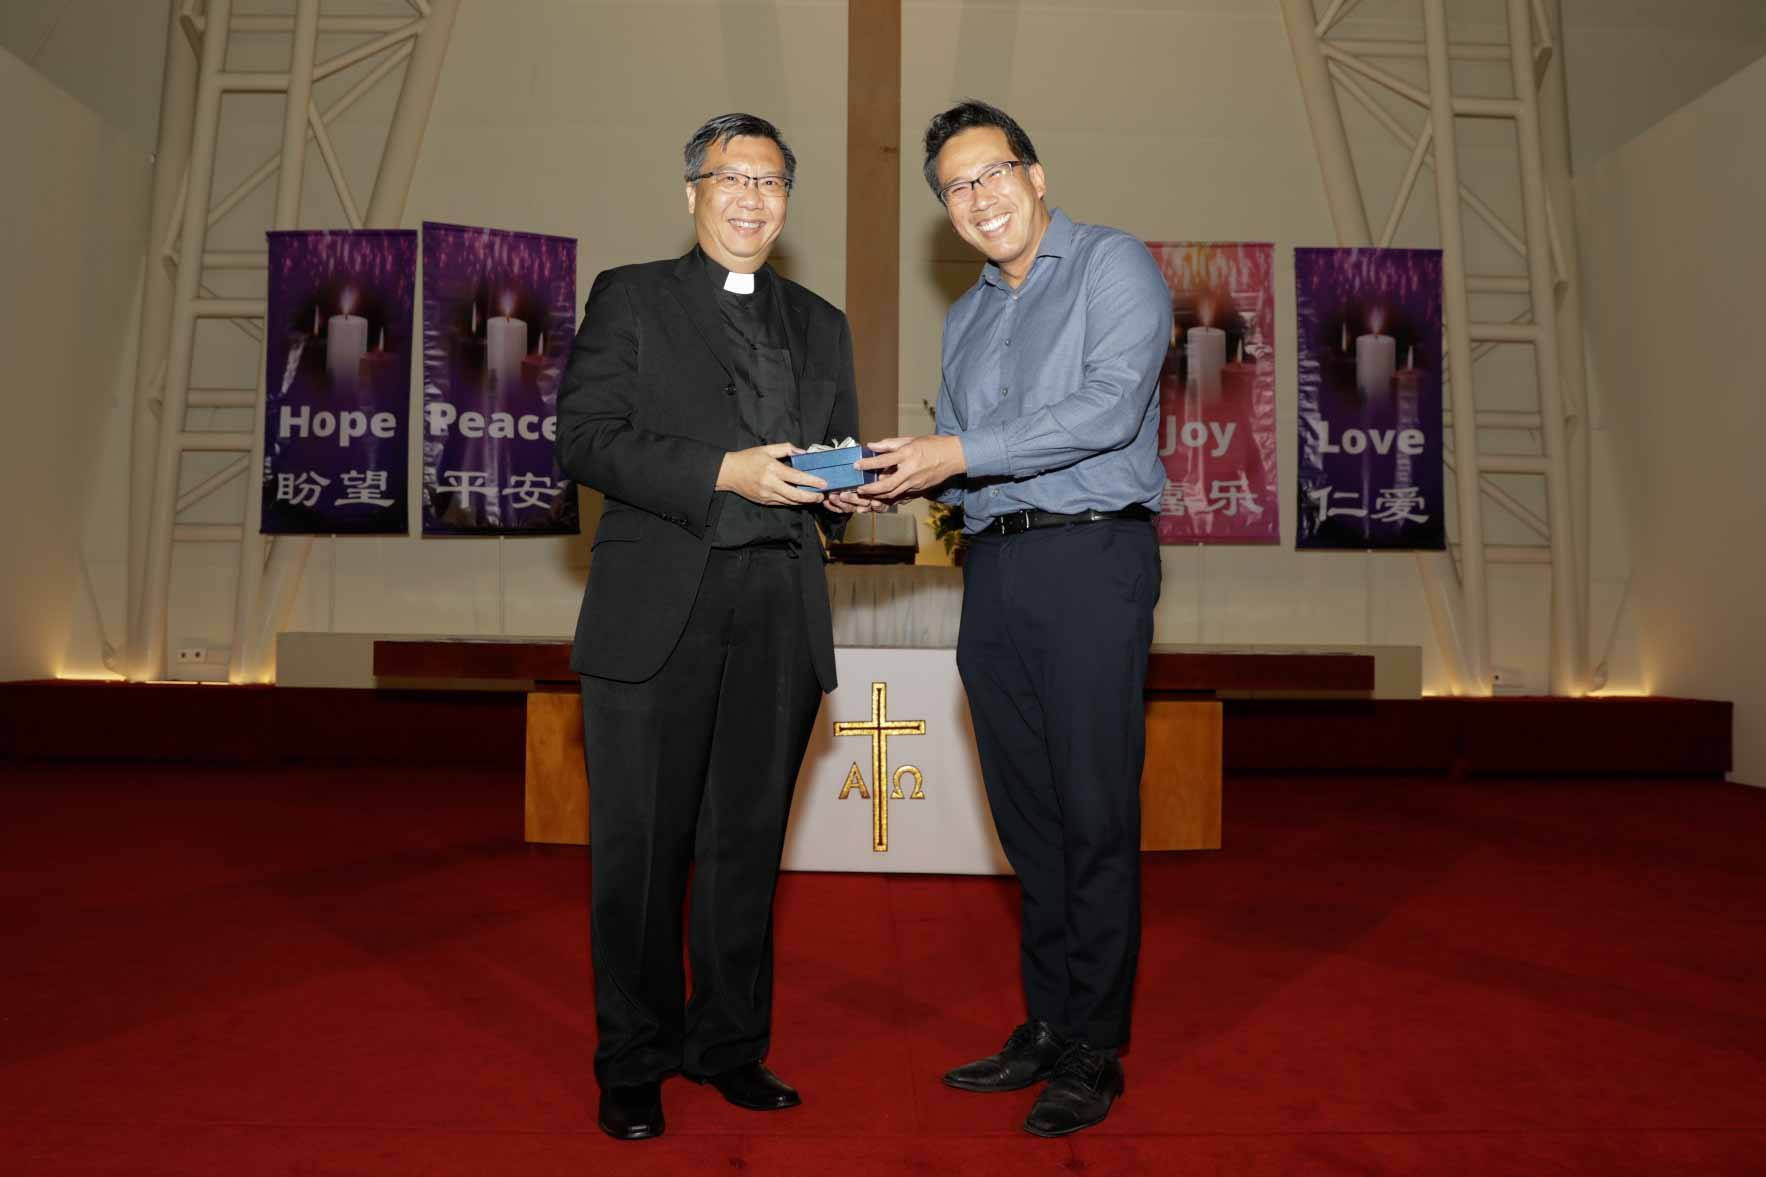 Farewell from Rev Leow